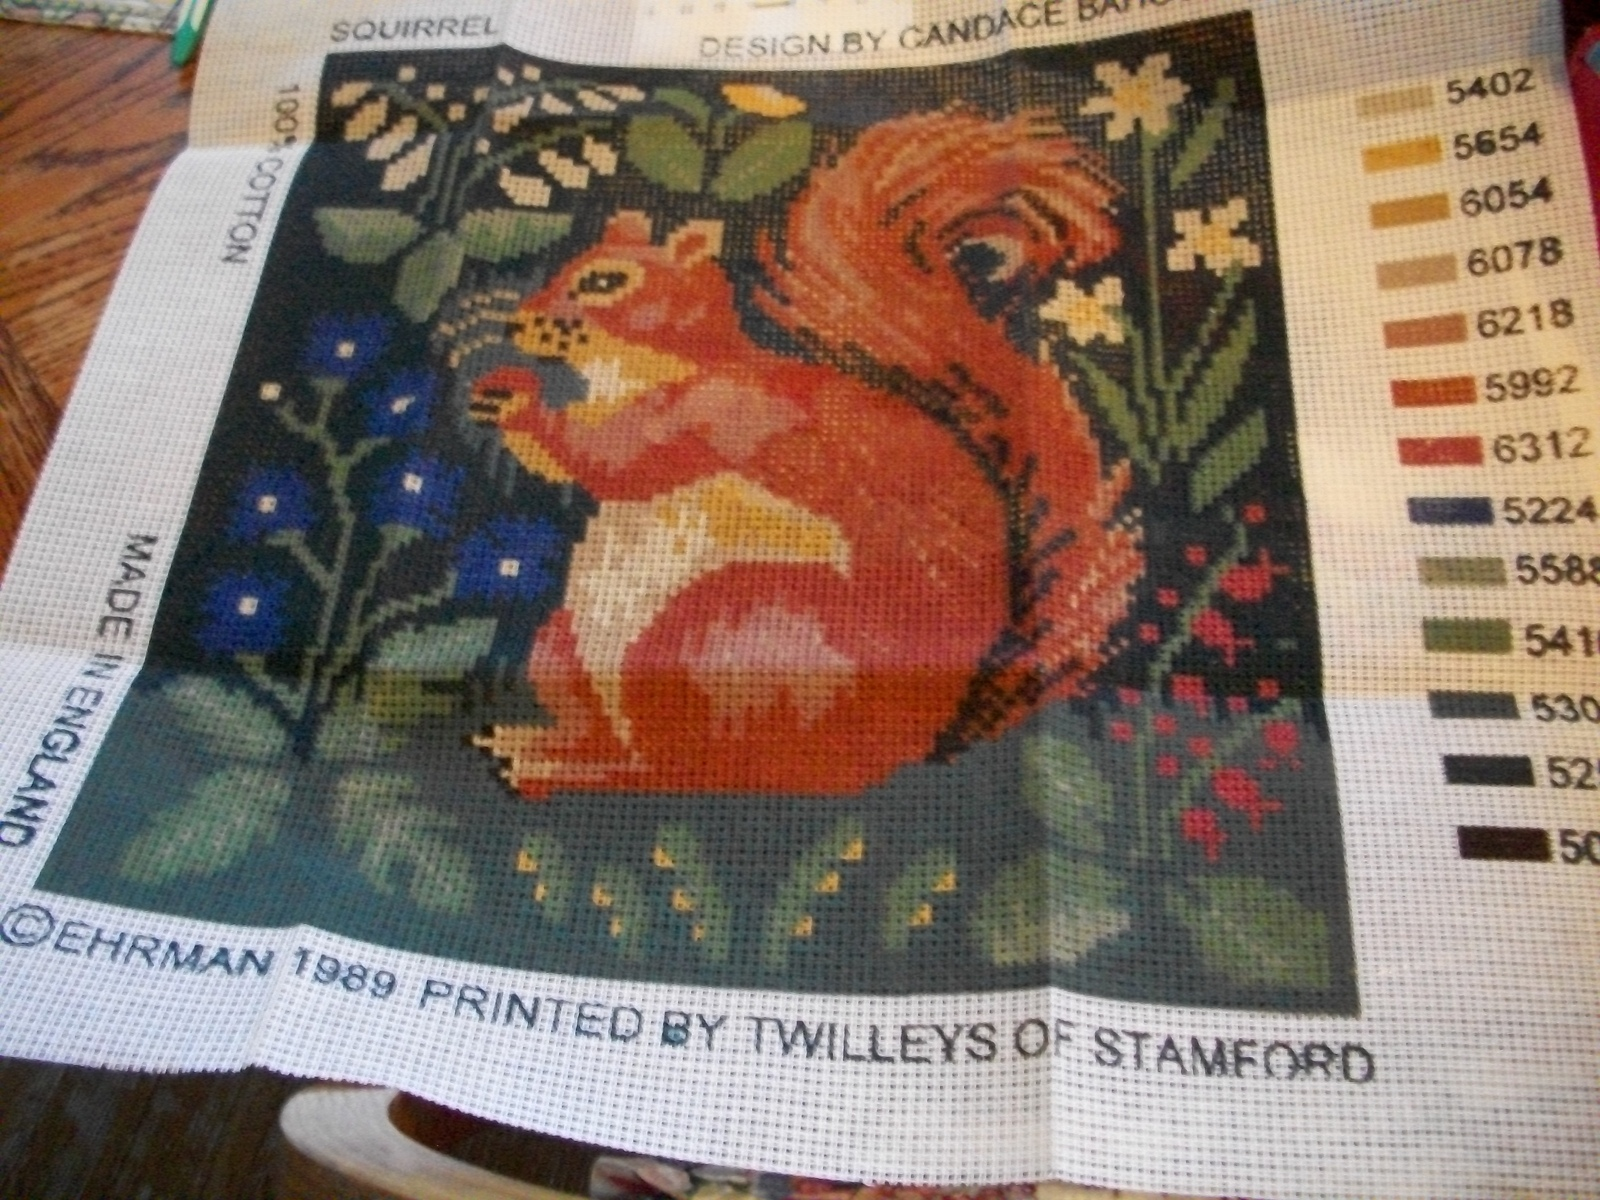 Primary image for Candace Bahouth Squirrel Needlepoint Canvas Pattern